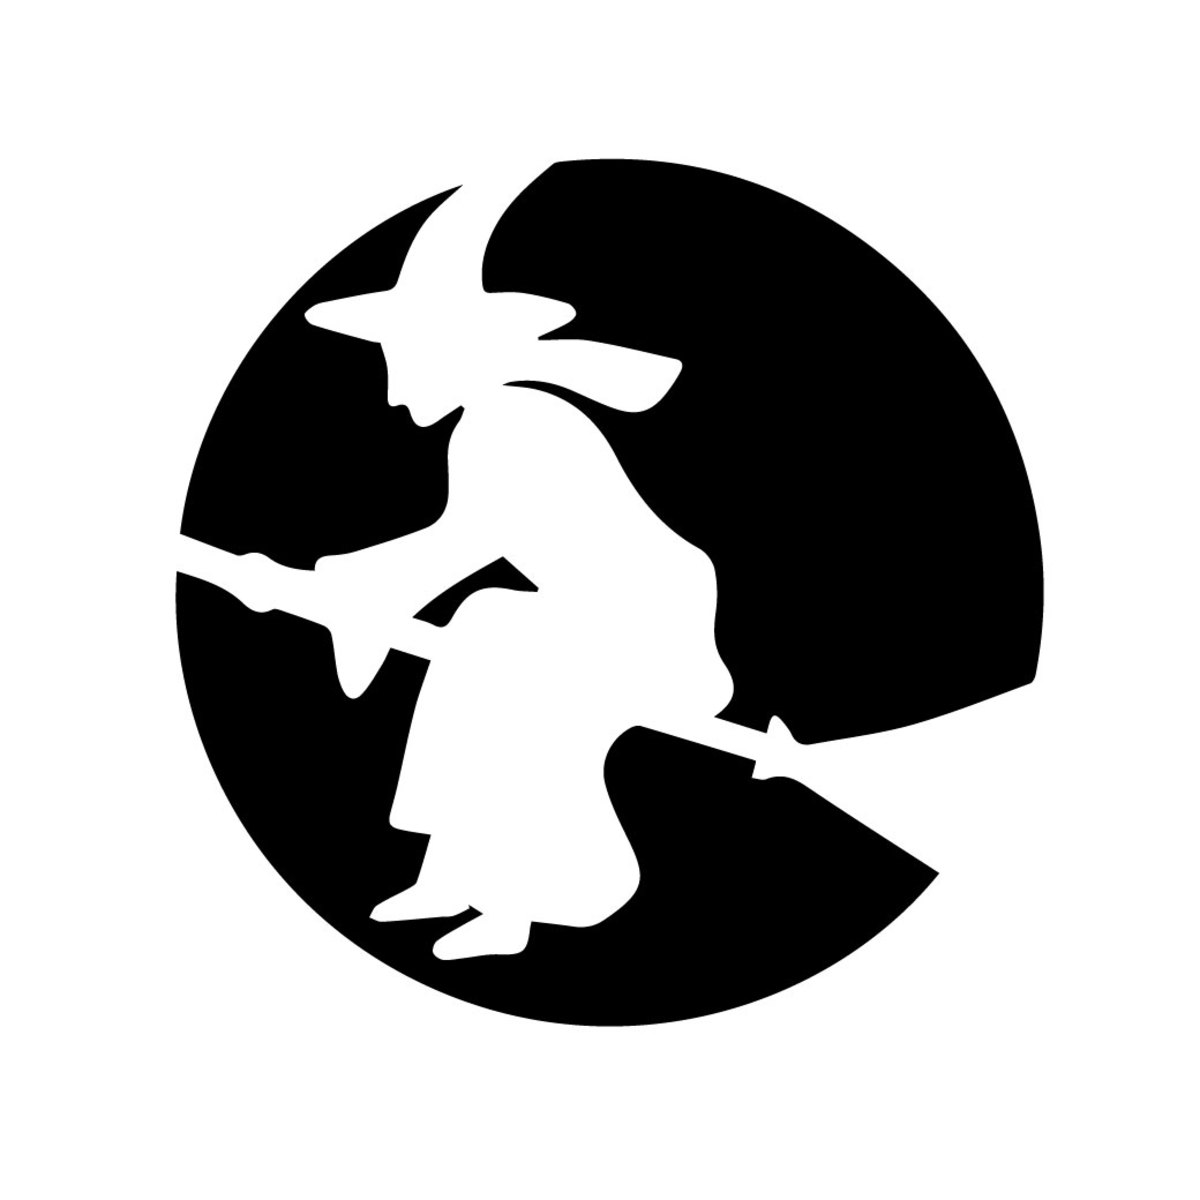 This pumpkin-carving pattern shows a witch flying on her broomstick.